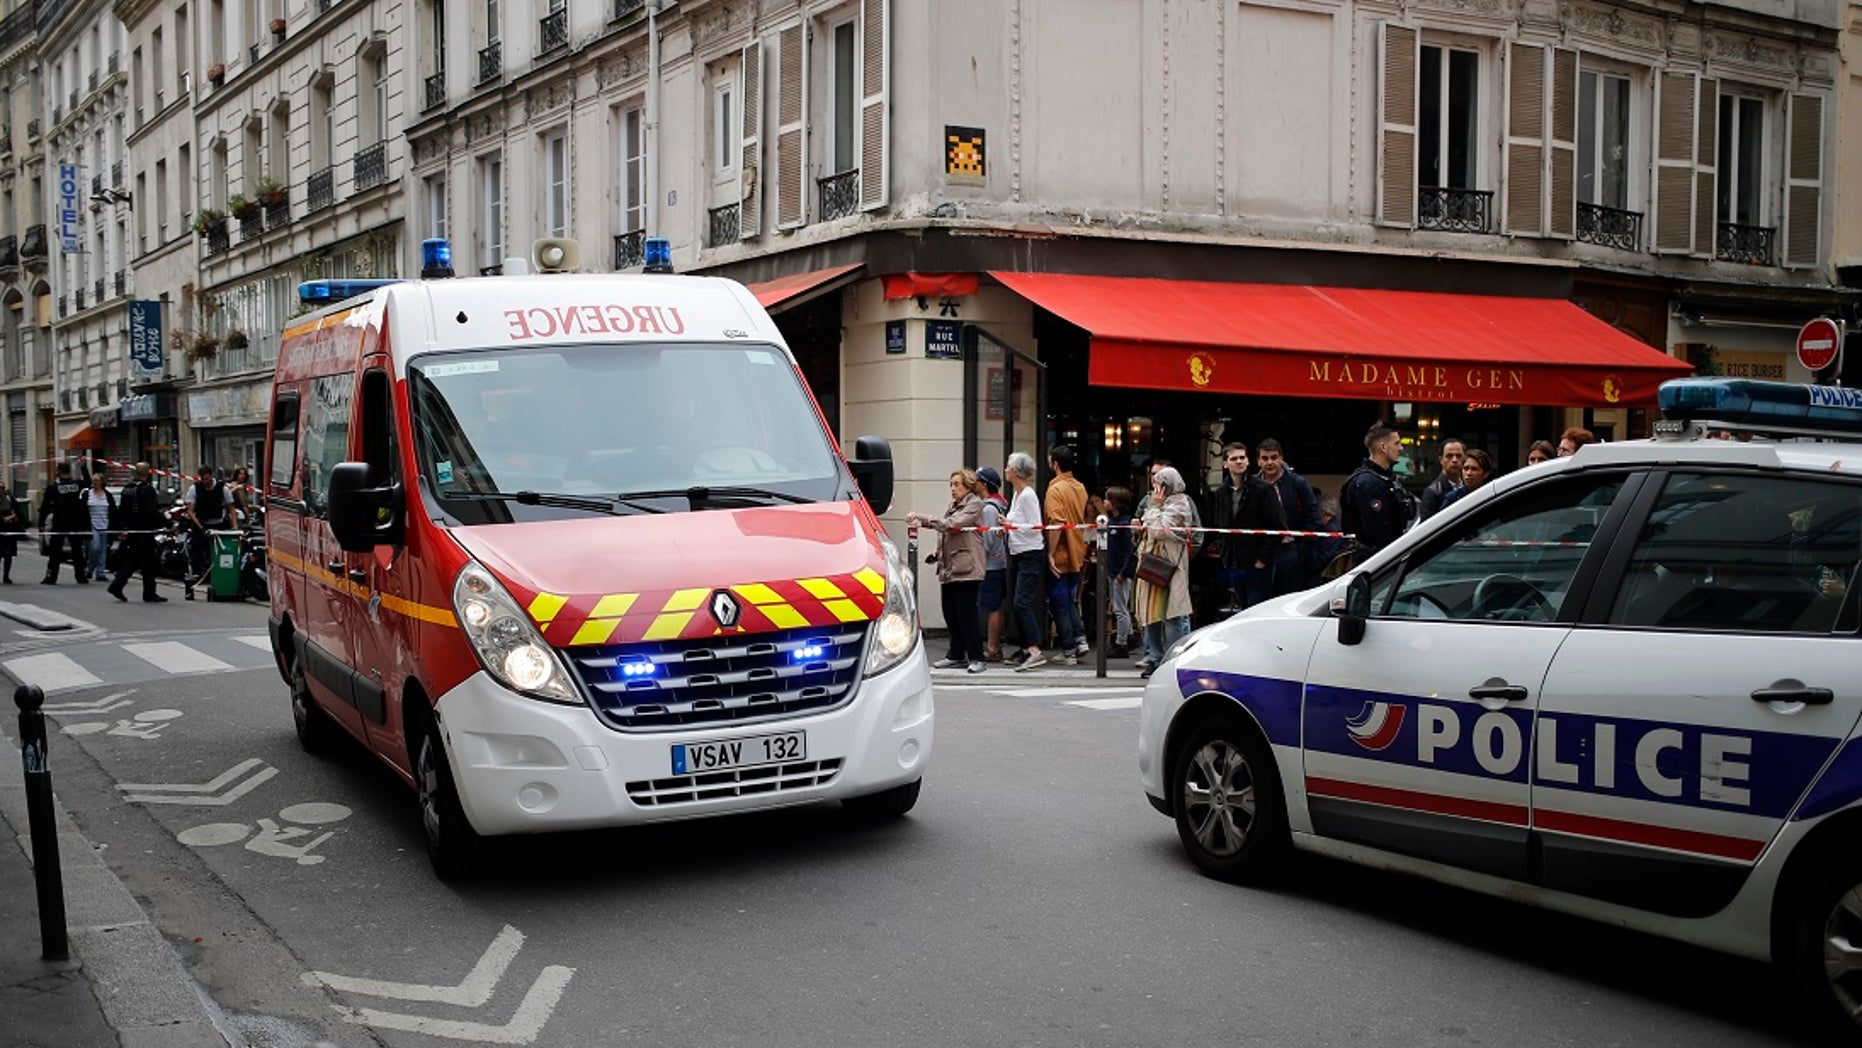 Emergency services arrive at the scene of a hostage situation in central France on Tuesday, June 12, 2018.